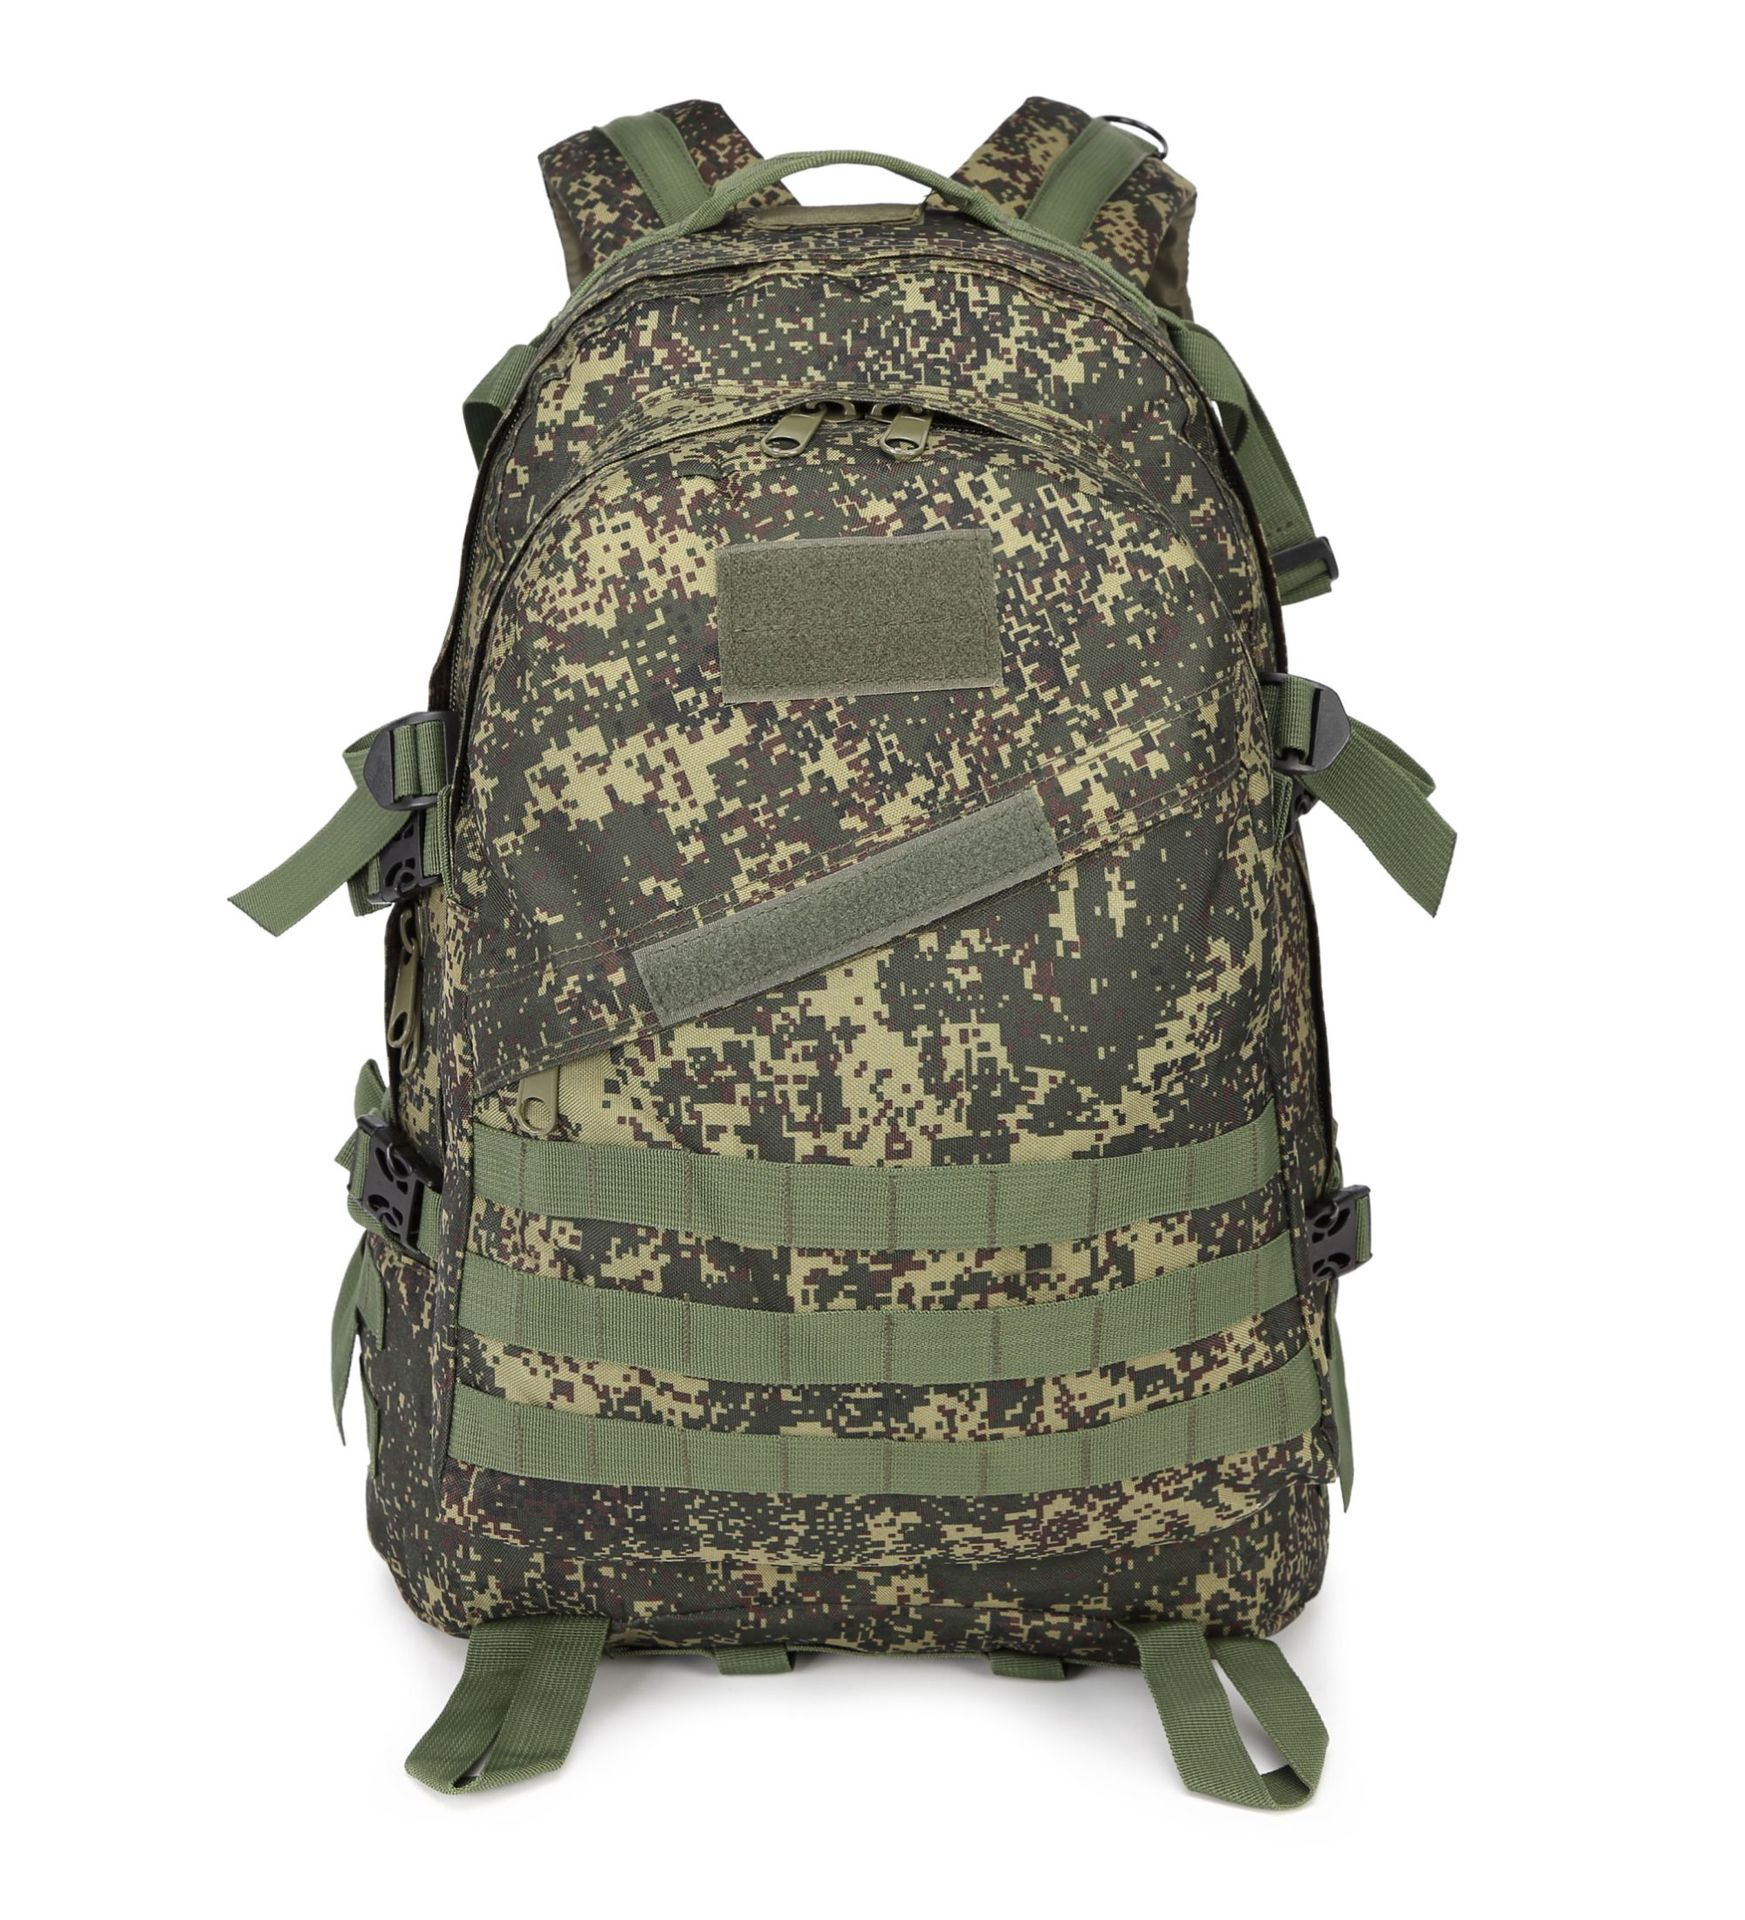 Russian EMR Camouflage Molle Hiking Camping Urban Commuting 3D Tactical Attack Packets Backpack 45L Long-term Currently Availabl